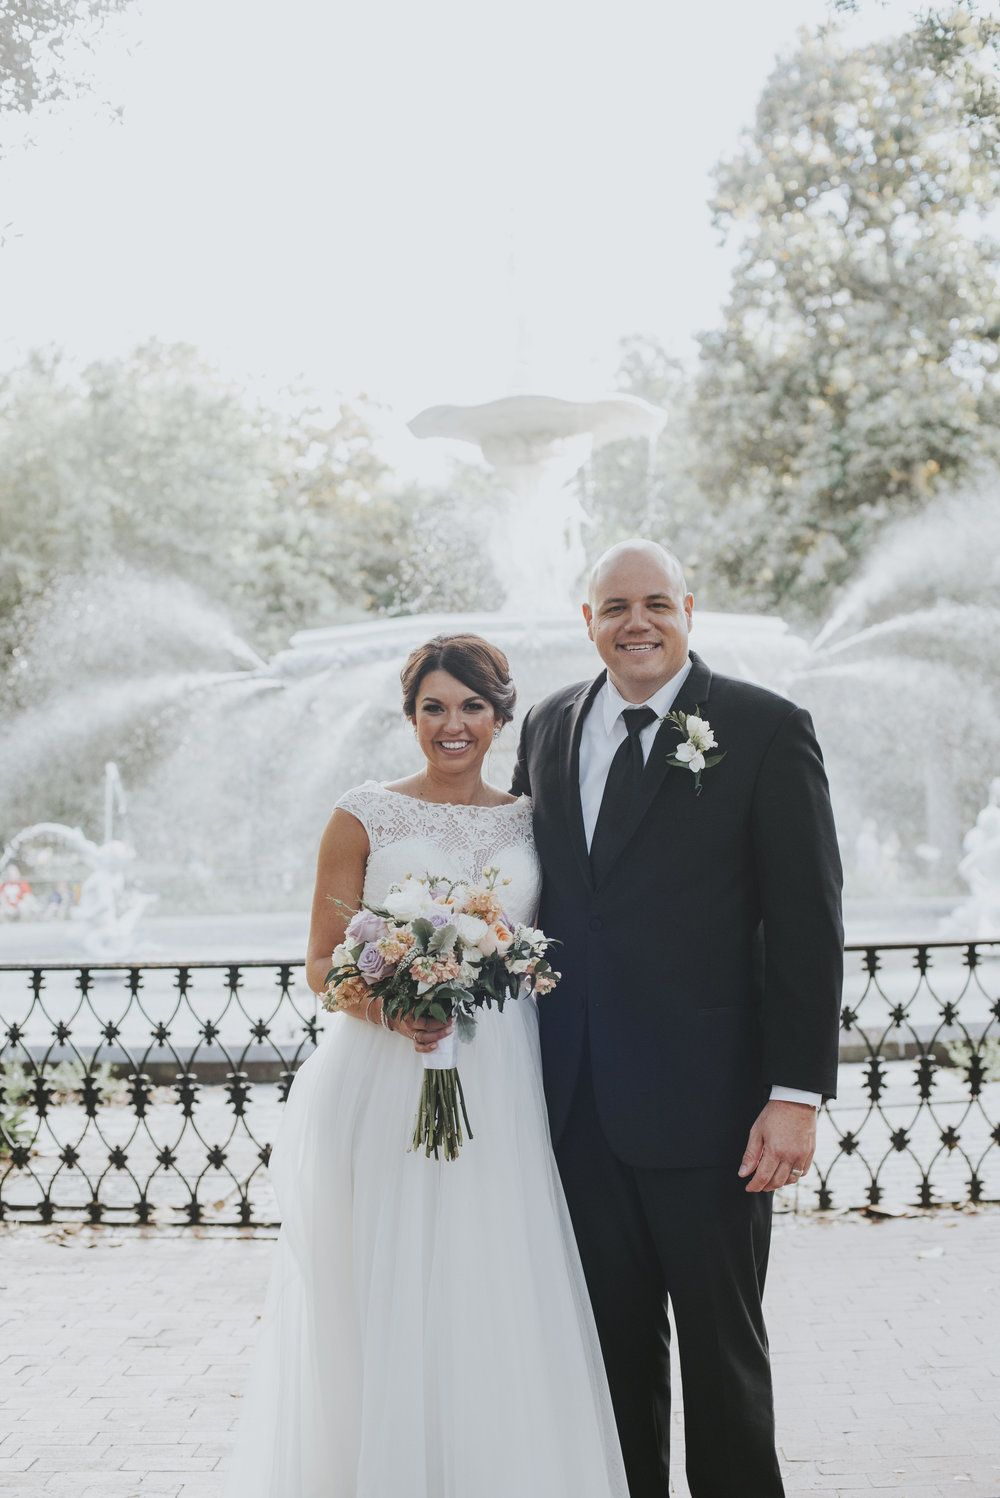 Charming Black and White Wedding at Whitefield Chapel | Wedding